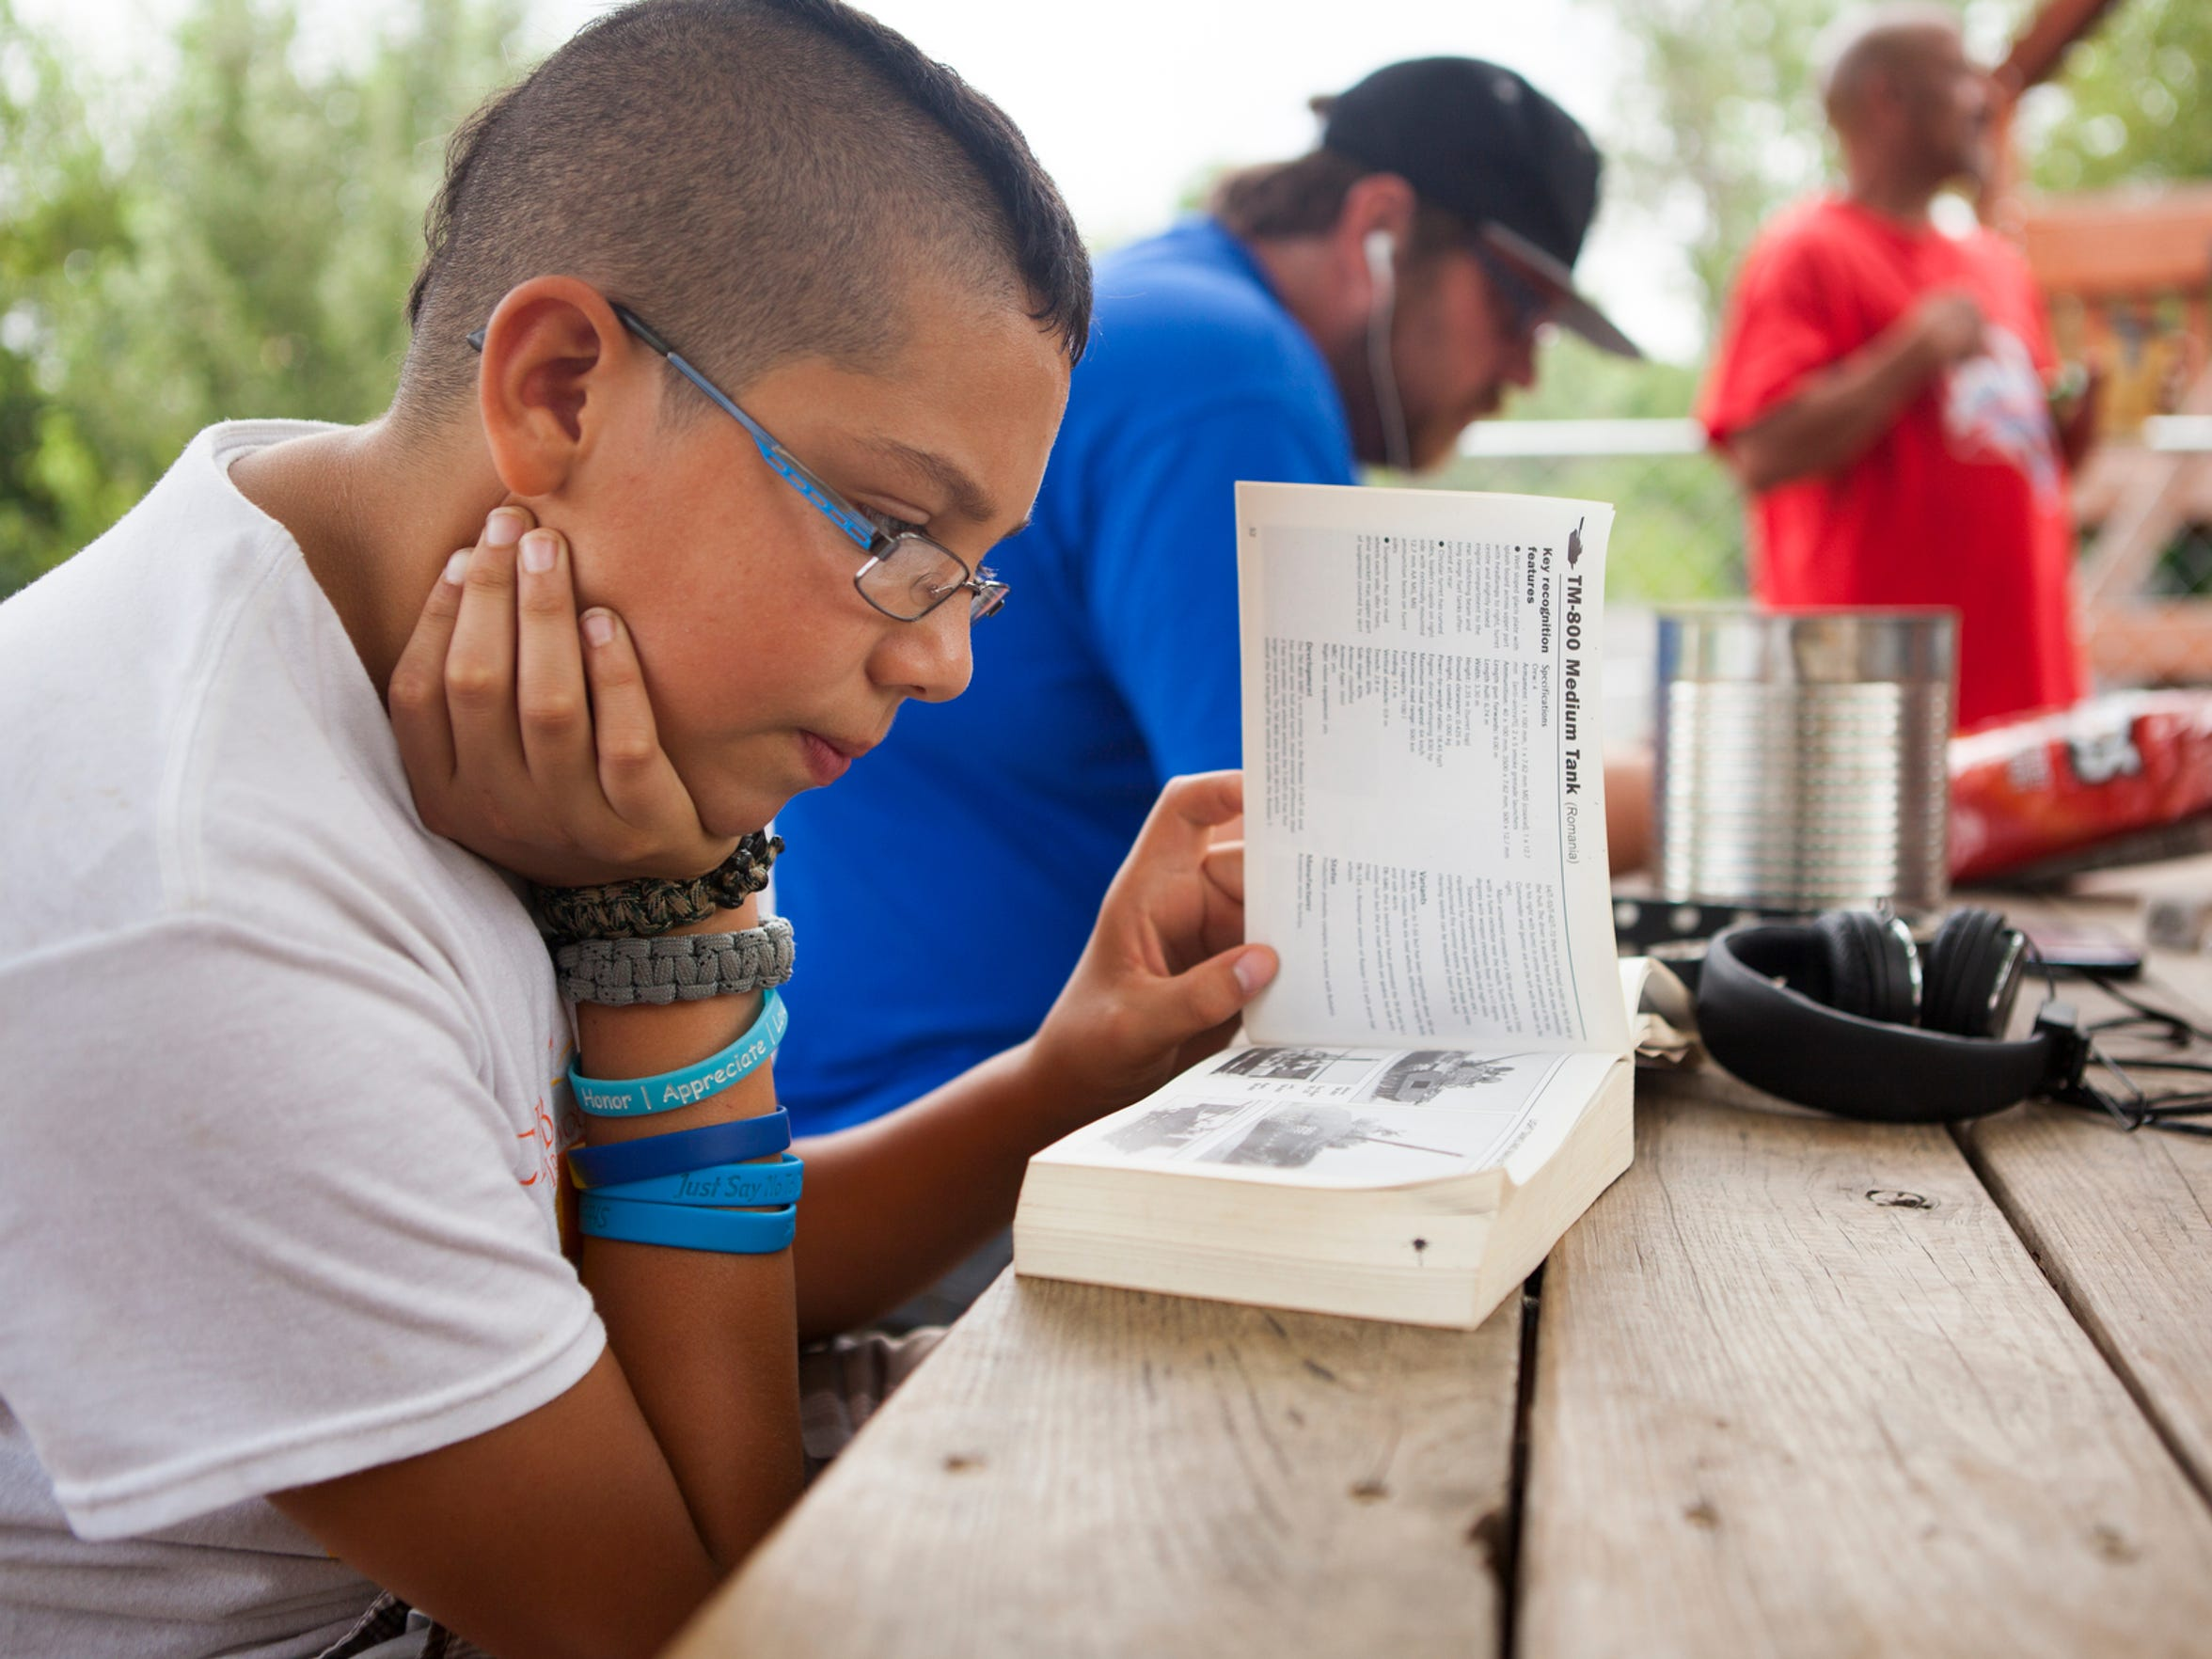 """Timothy Nettles reads a book outside The Valley Mission, relaxing with his family and other residents on Aug. 8, 2015. The 13-year-old fears people at his school finding out that he's homeless. """"They treat me differently,Ó he said. ÒThey make fun of me because I am at a shelter."""""""